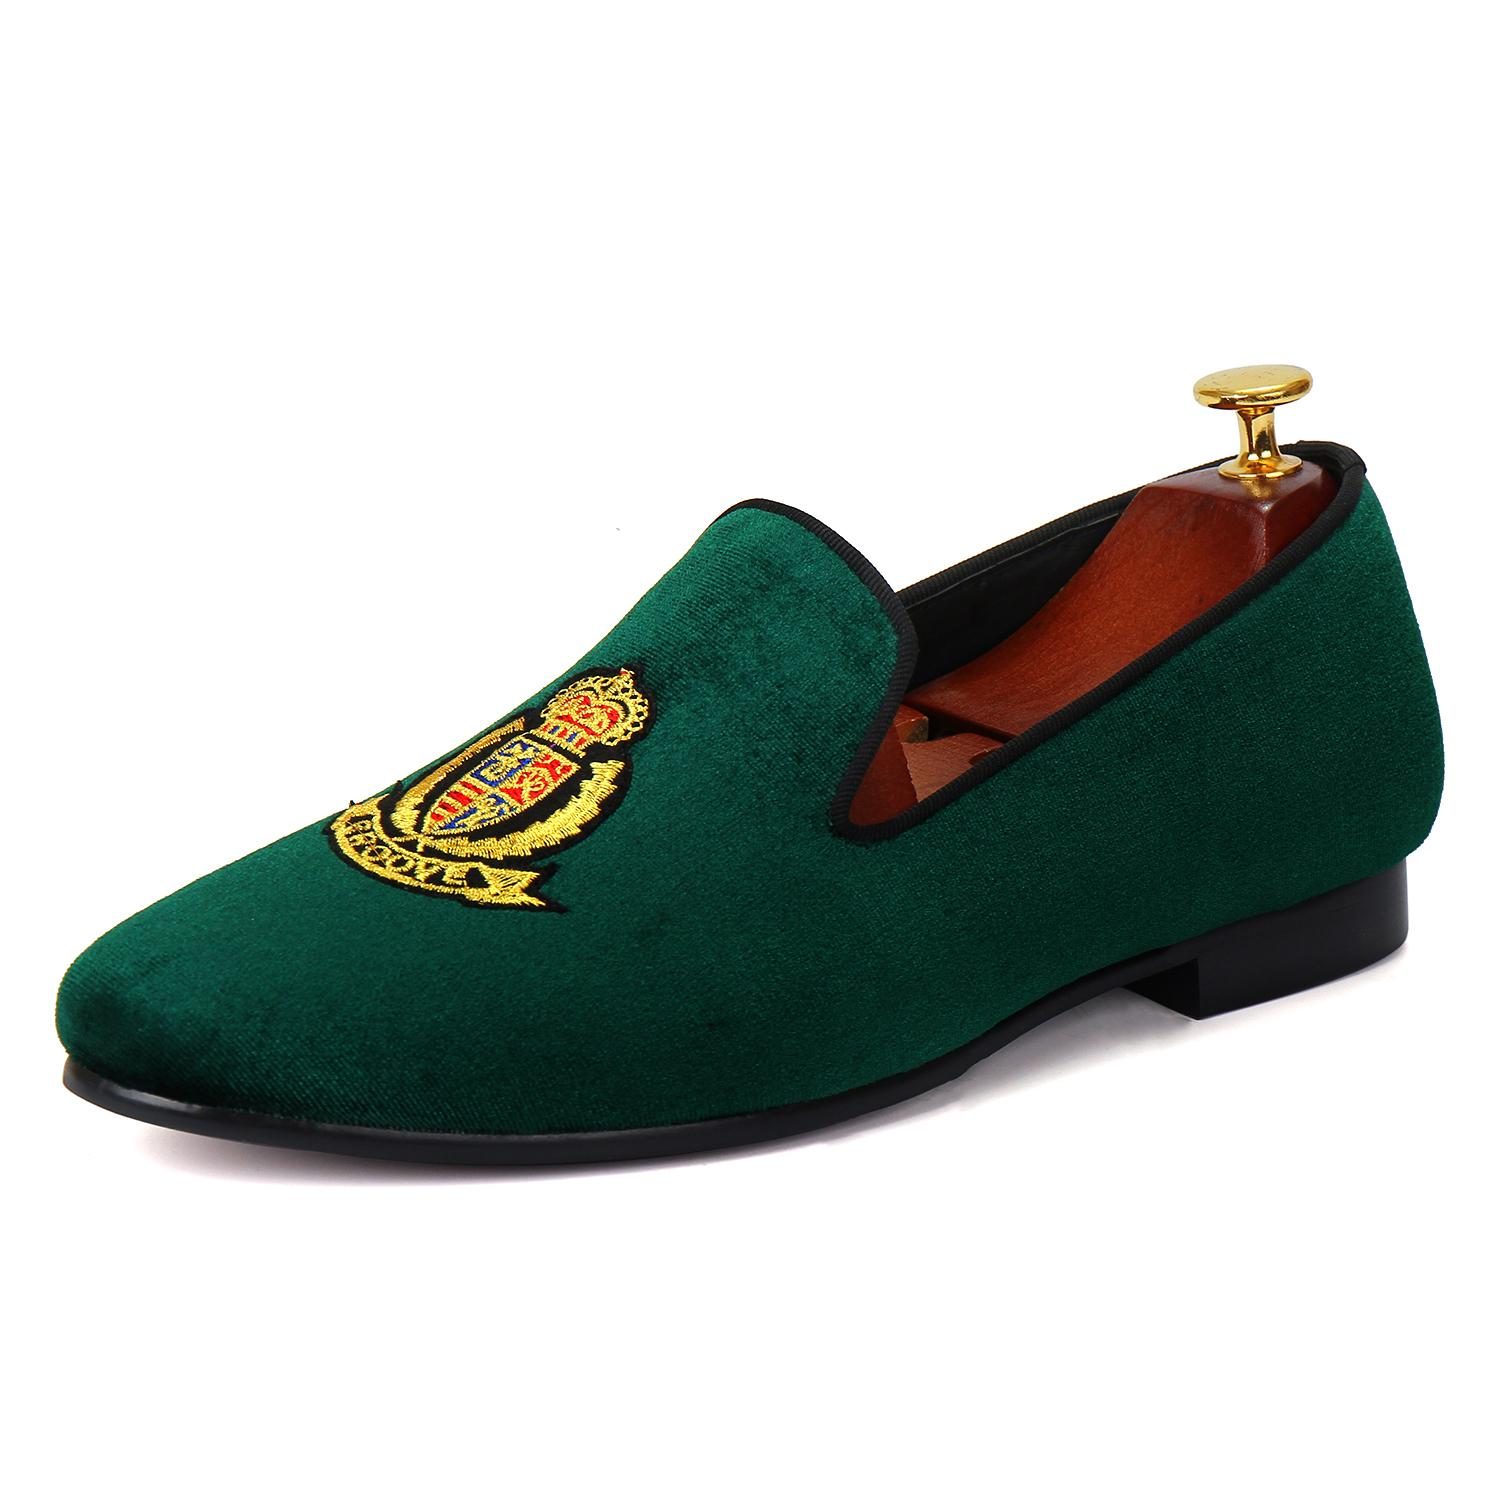 Harpelunde Halloween Gift Green Velvet Dress Shoes For Men Round Toe Leather Lining Free Shipping US Size 7-14